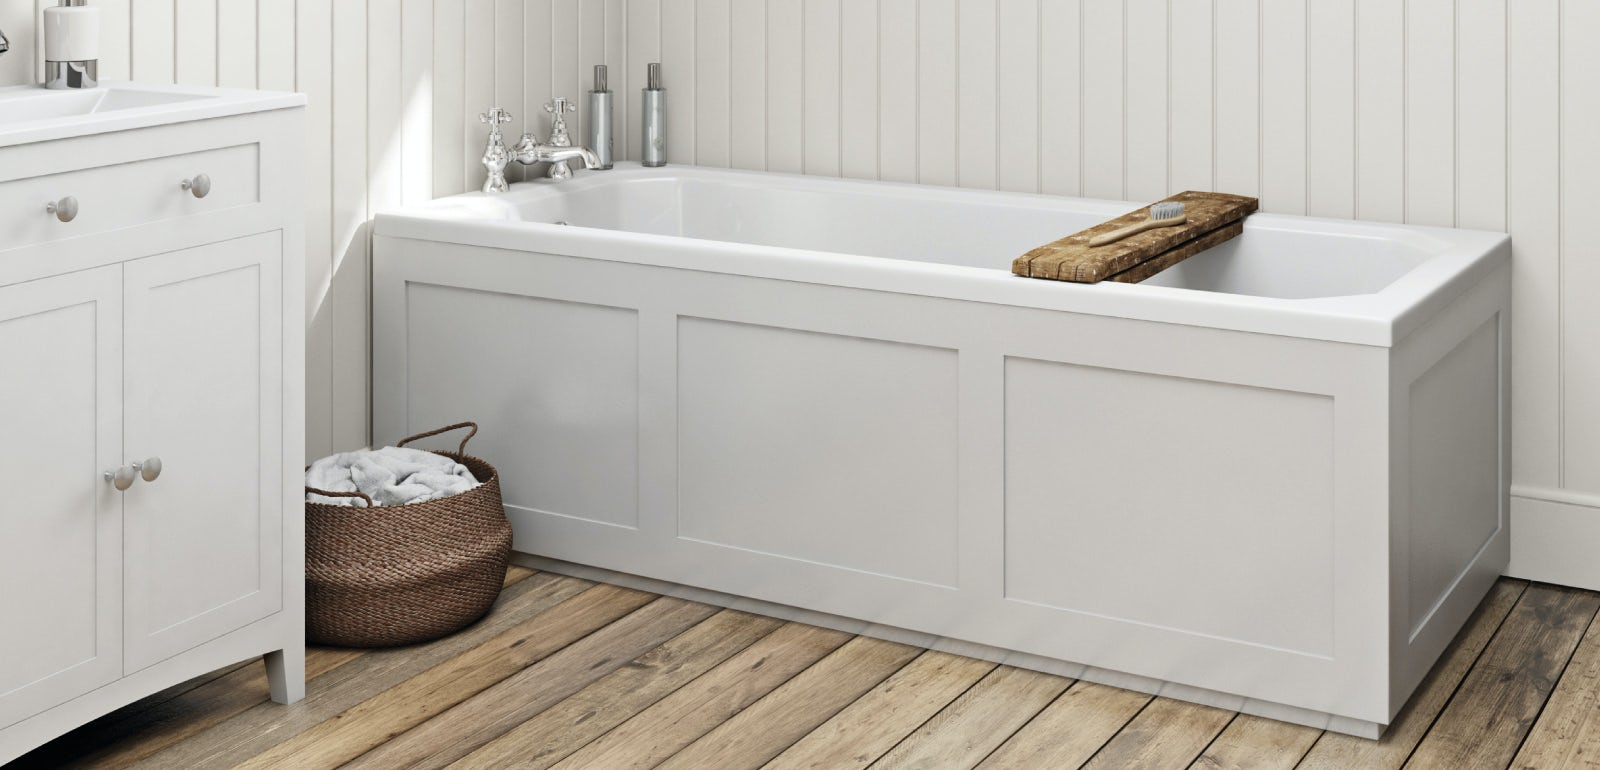 How to fit a wooden bath panel | VictoriaPlum.com